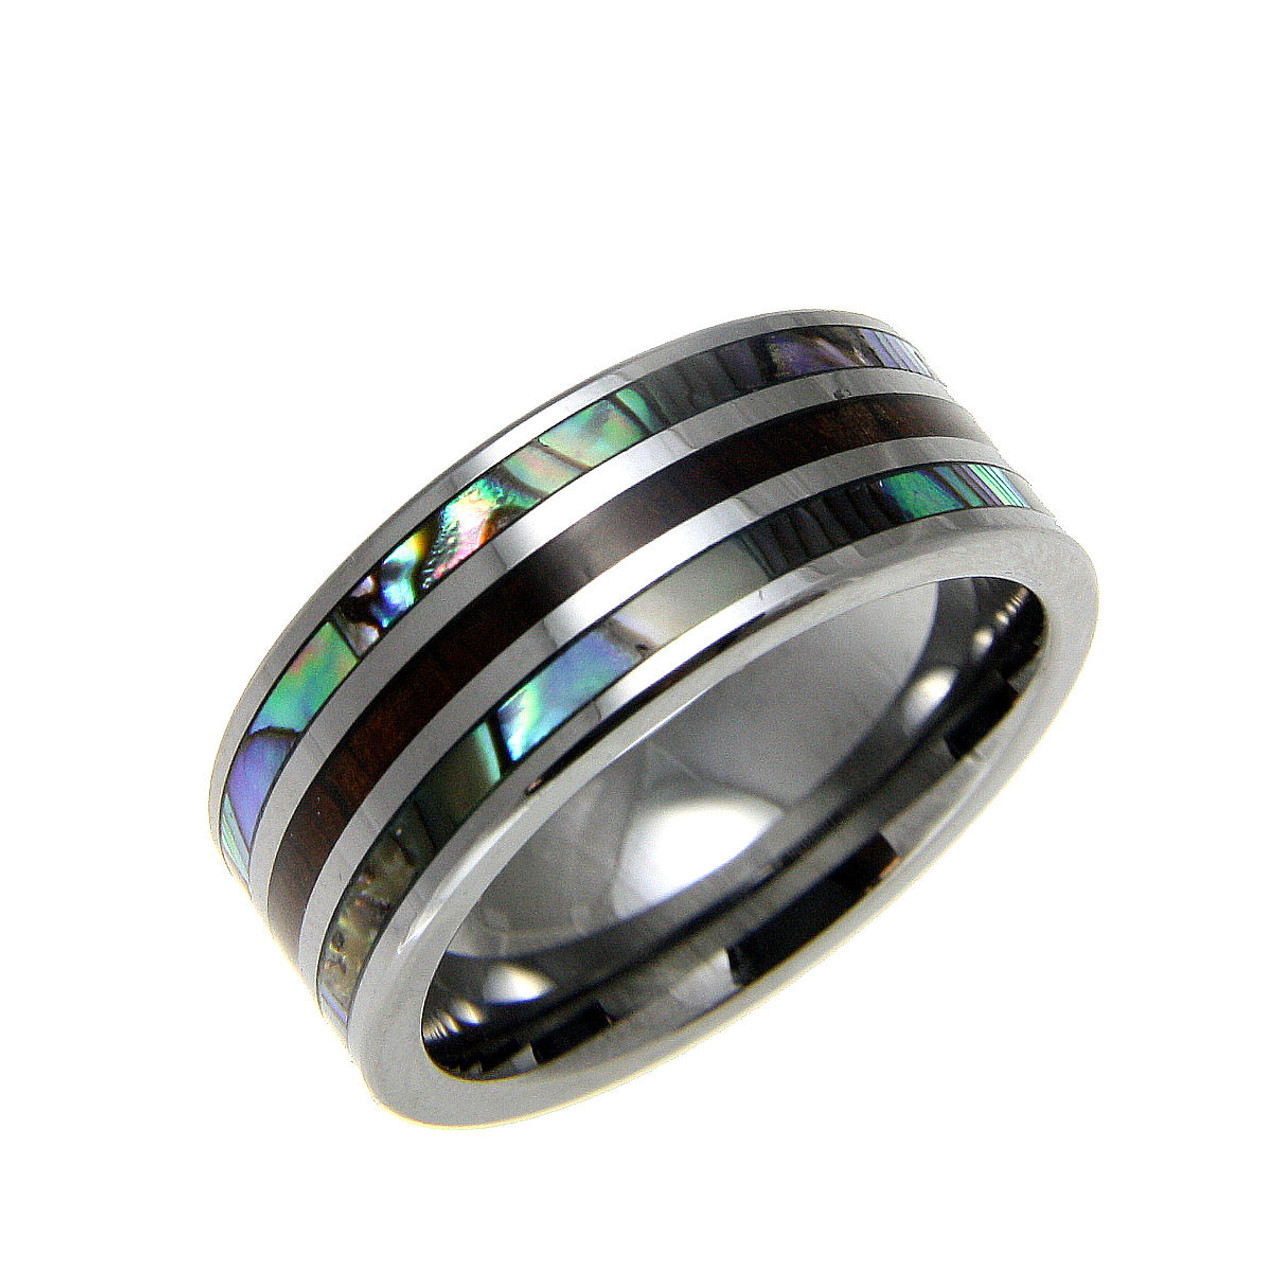 palladium wedding free tungsten and bands c nickel rings diamond